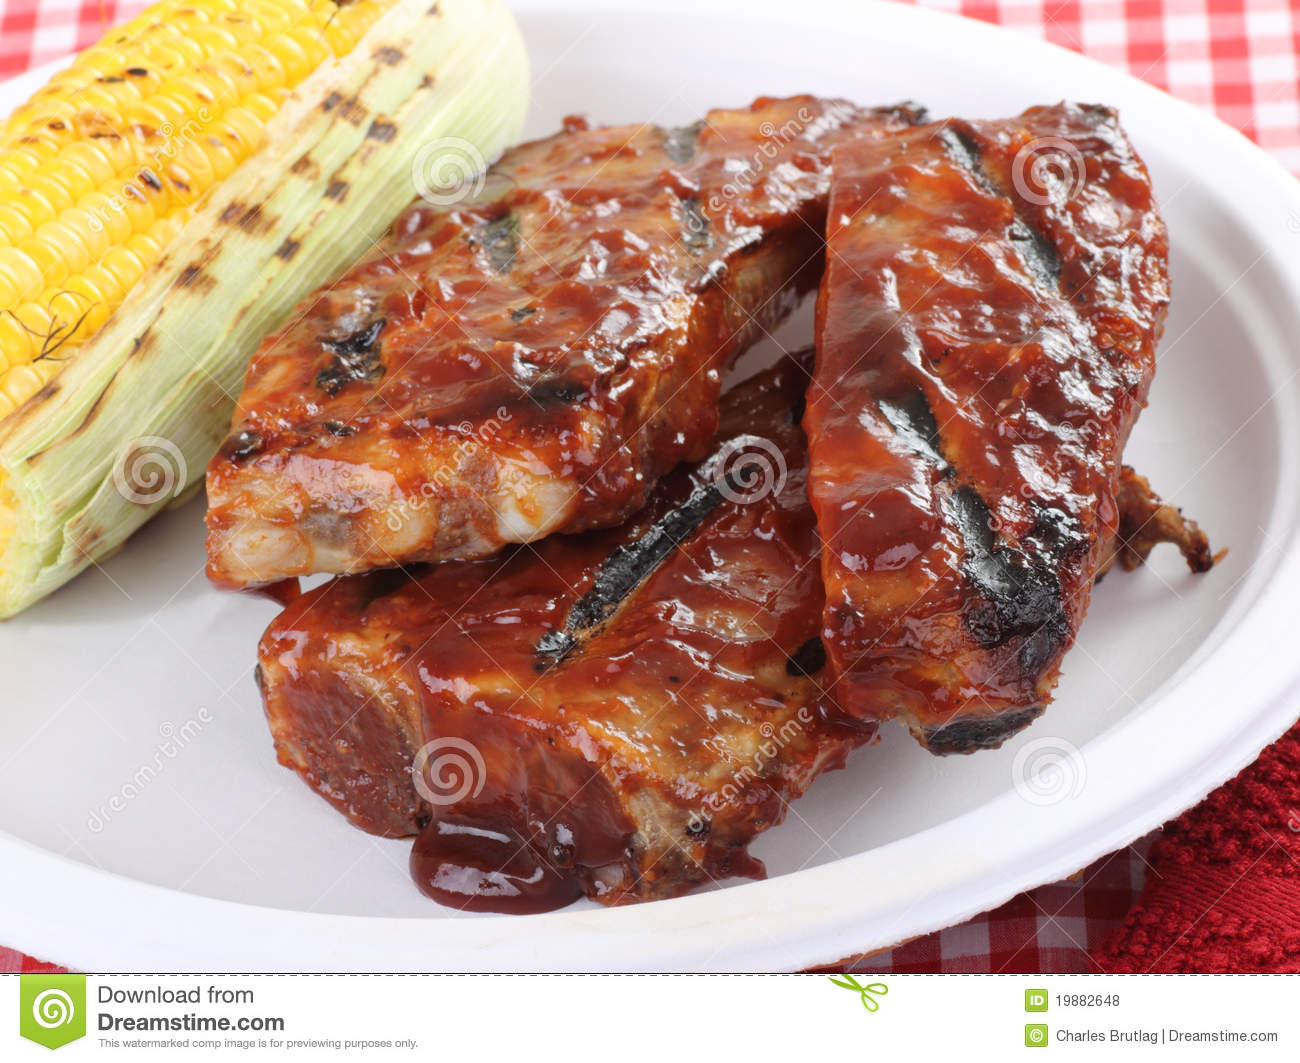 Barbecue Spareribs Royalty Free Stock Photos - Image: 19882648